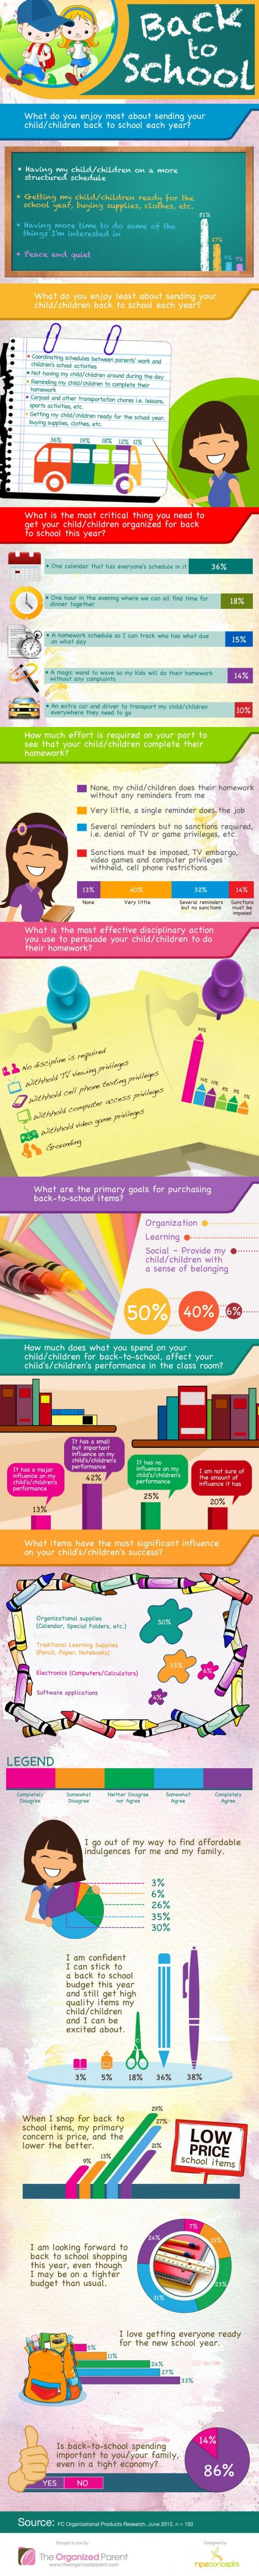 INFOGRAPHIC: BACK TO SCHOOL - PARENTS,  HOW DO YOU FEEL ABOUT BACK TO SCHOOL SEASON?    I never looked forward to Back to School season as a child.  Although I enjoyed school supply shopping (especially clothes shopping), I dreaded having to go back to a routine of homework and tests.  But, what about parents?  How do you feel about Back to School season?